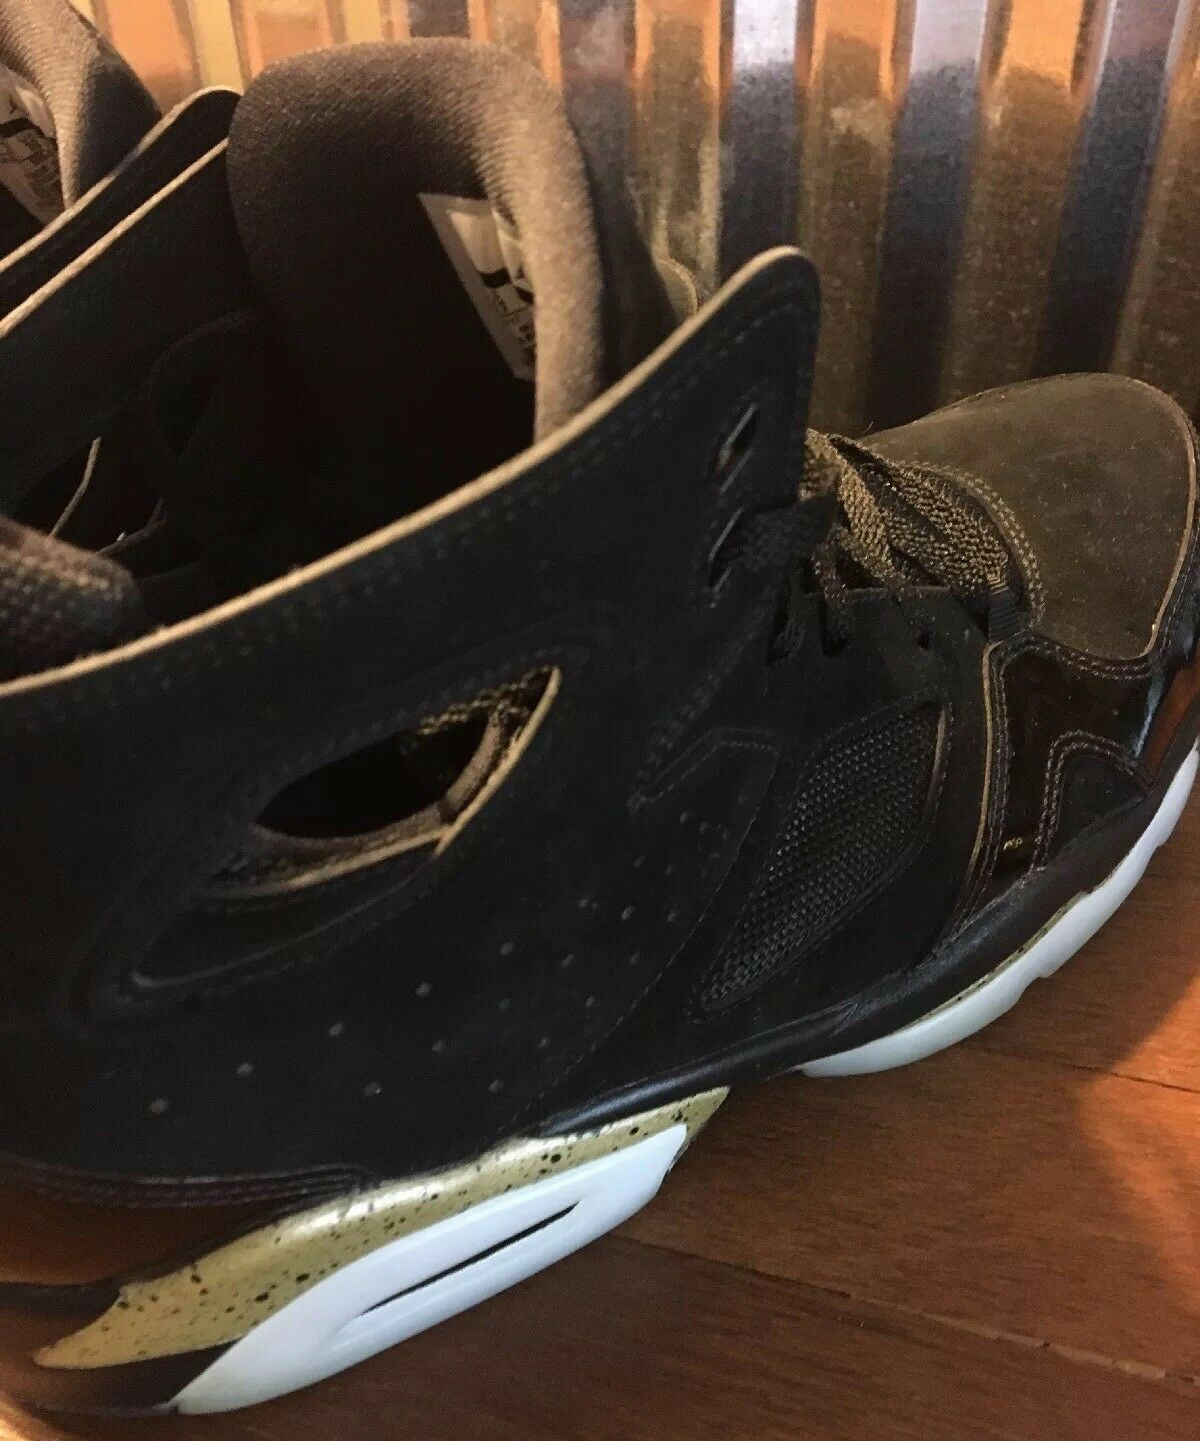 01397c4a31 ... 2017 Nike Air Jordan Black gold Size Size Size 11 Only Wore Once 27dc6c  ...